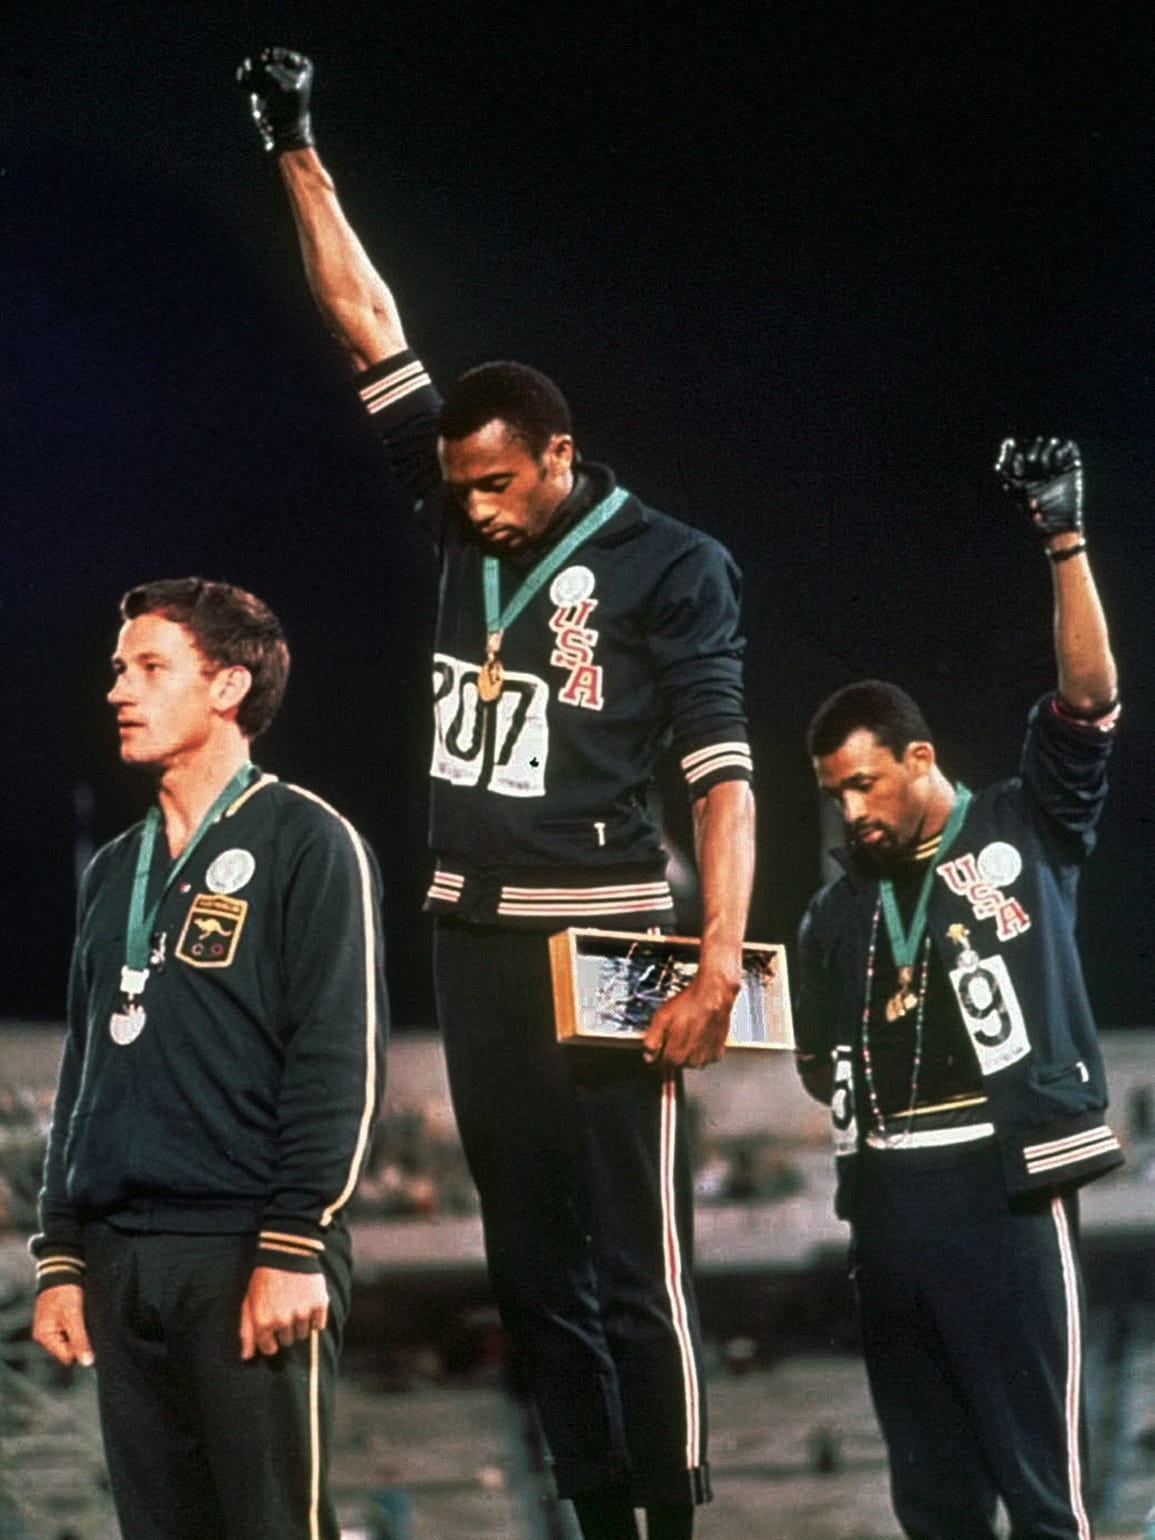 In this Oct. 16, 1968, file photo, U.S. athletes Tommie Smith, center, and John Carlos stare downward while extending gloved hands skyward during the playing of the Star Spangled Banner after Smith received the gold and Carlos the bronze for the 200 meter run at the Summer Olympic Games in Mexico City.